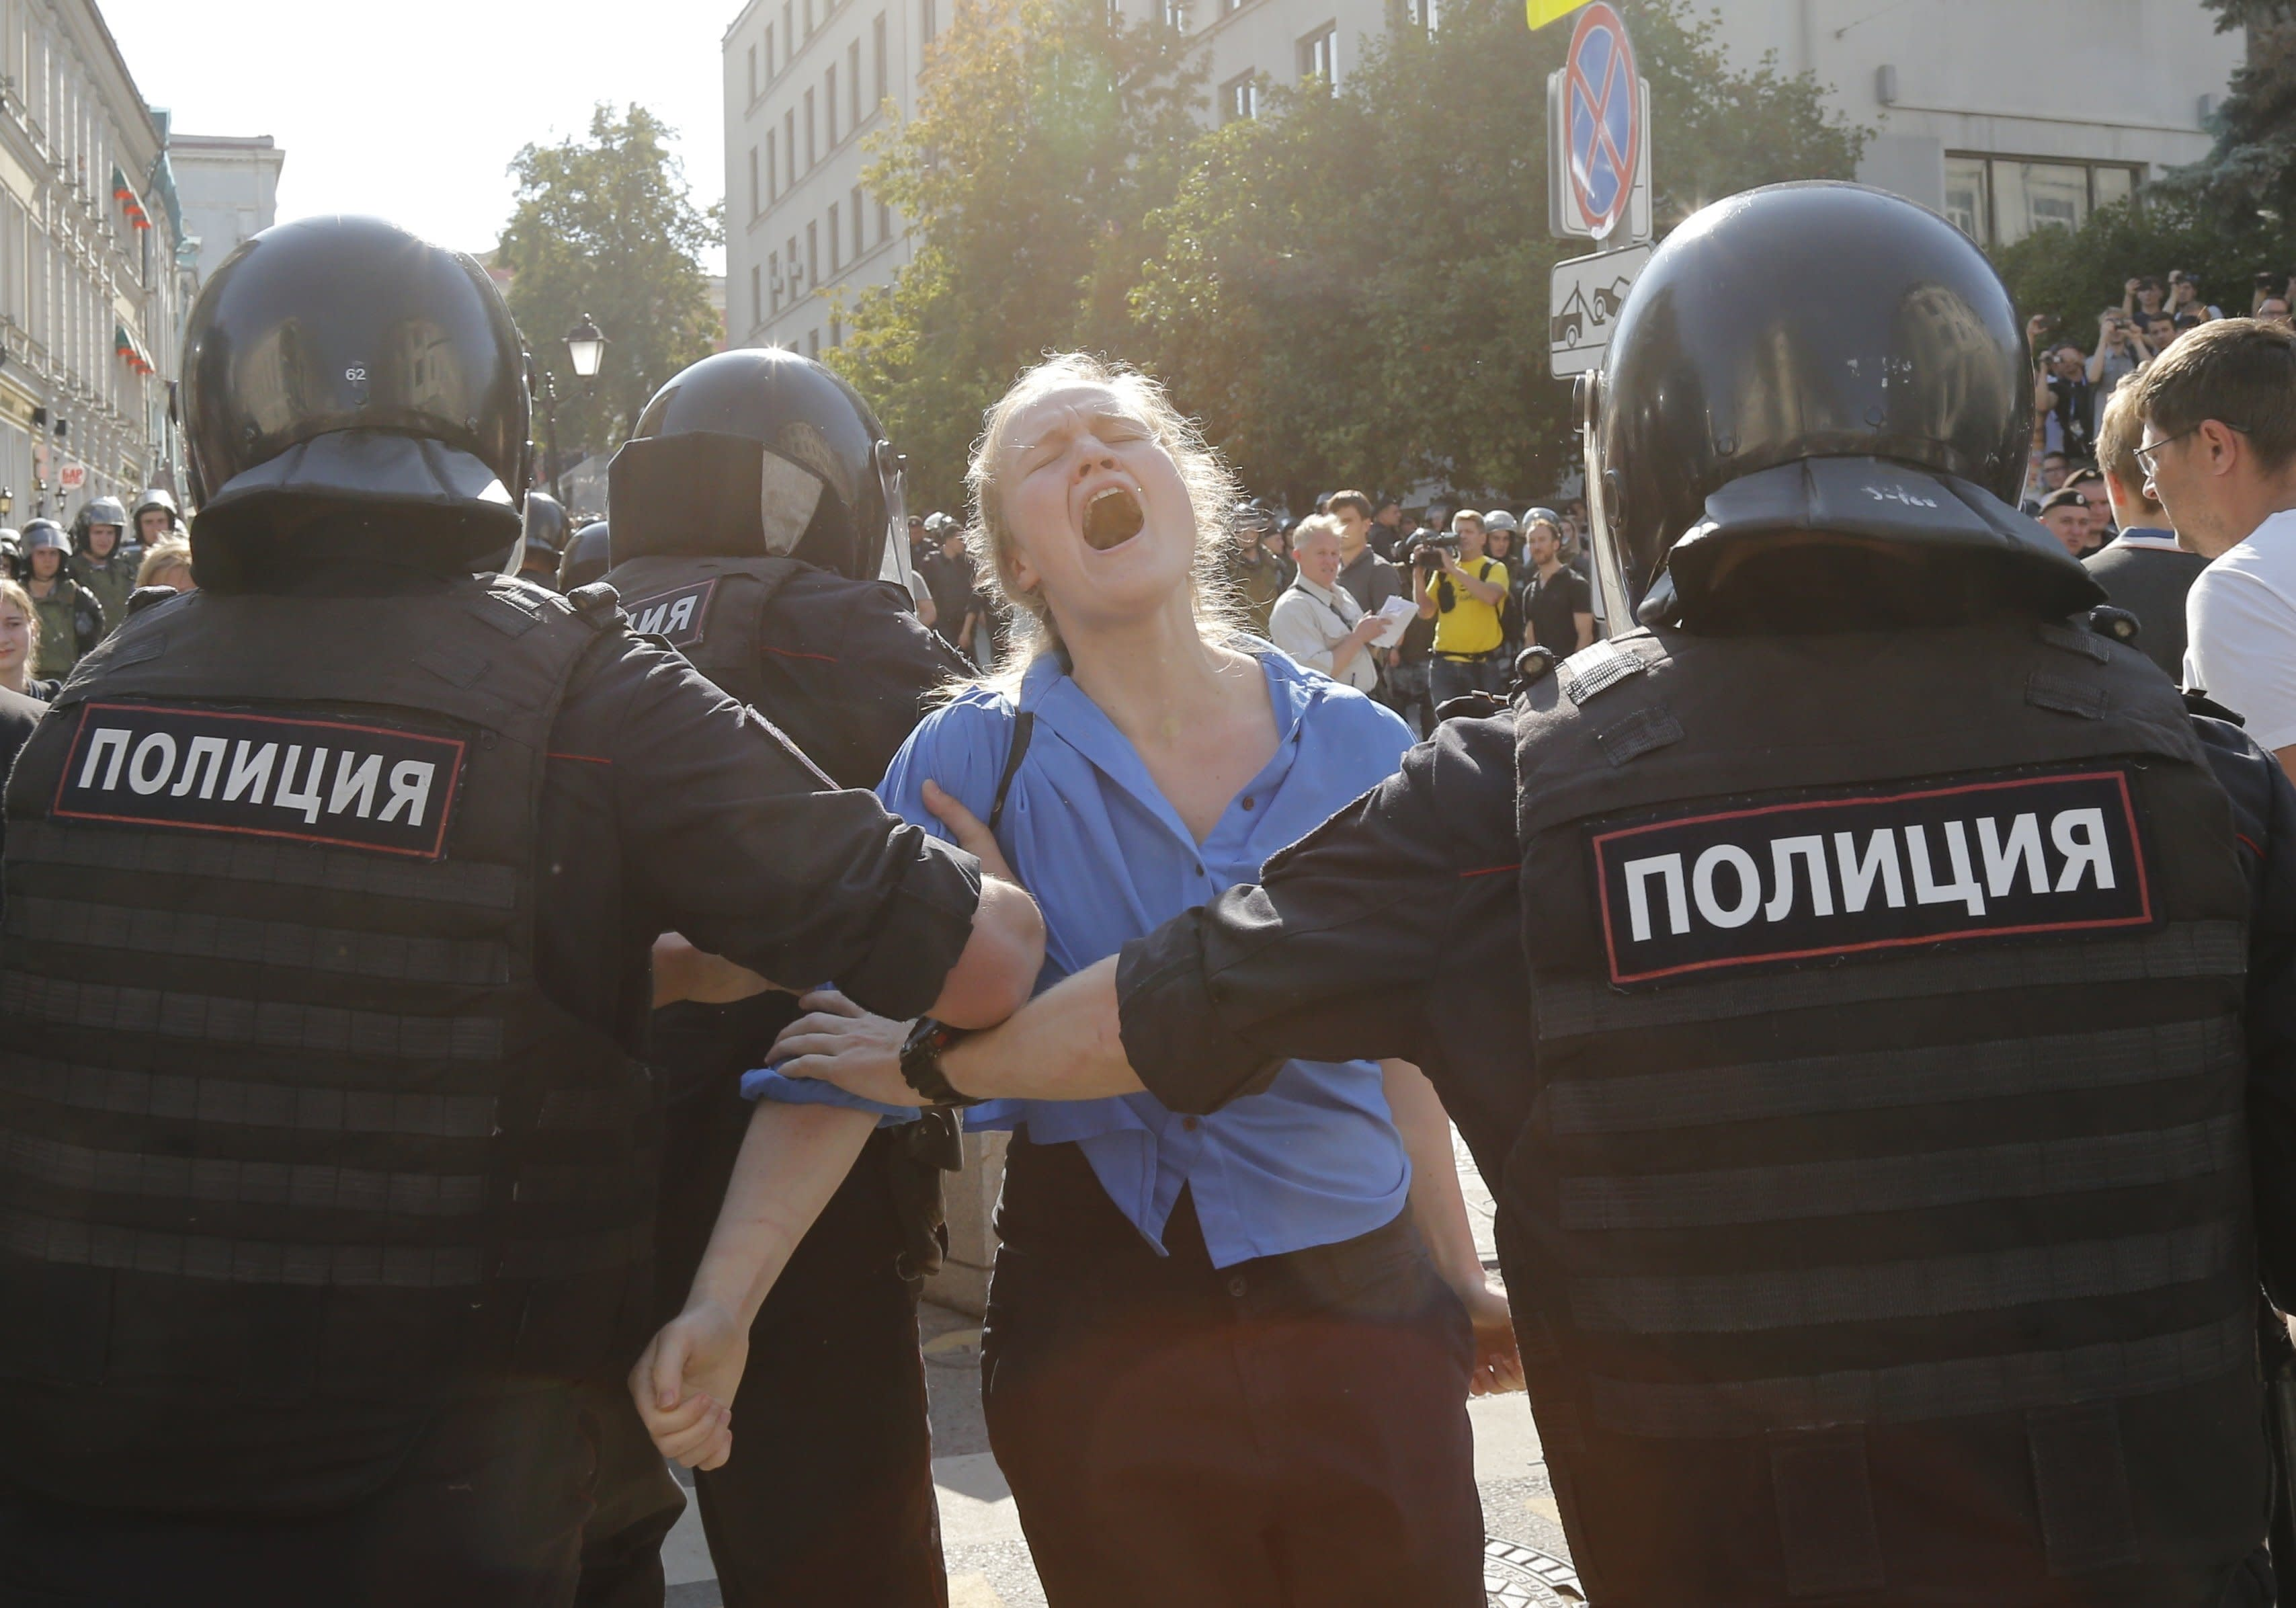 Russian opposition leader re-jailed after poison scare